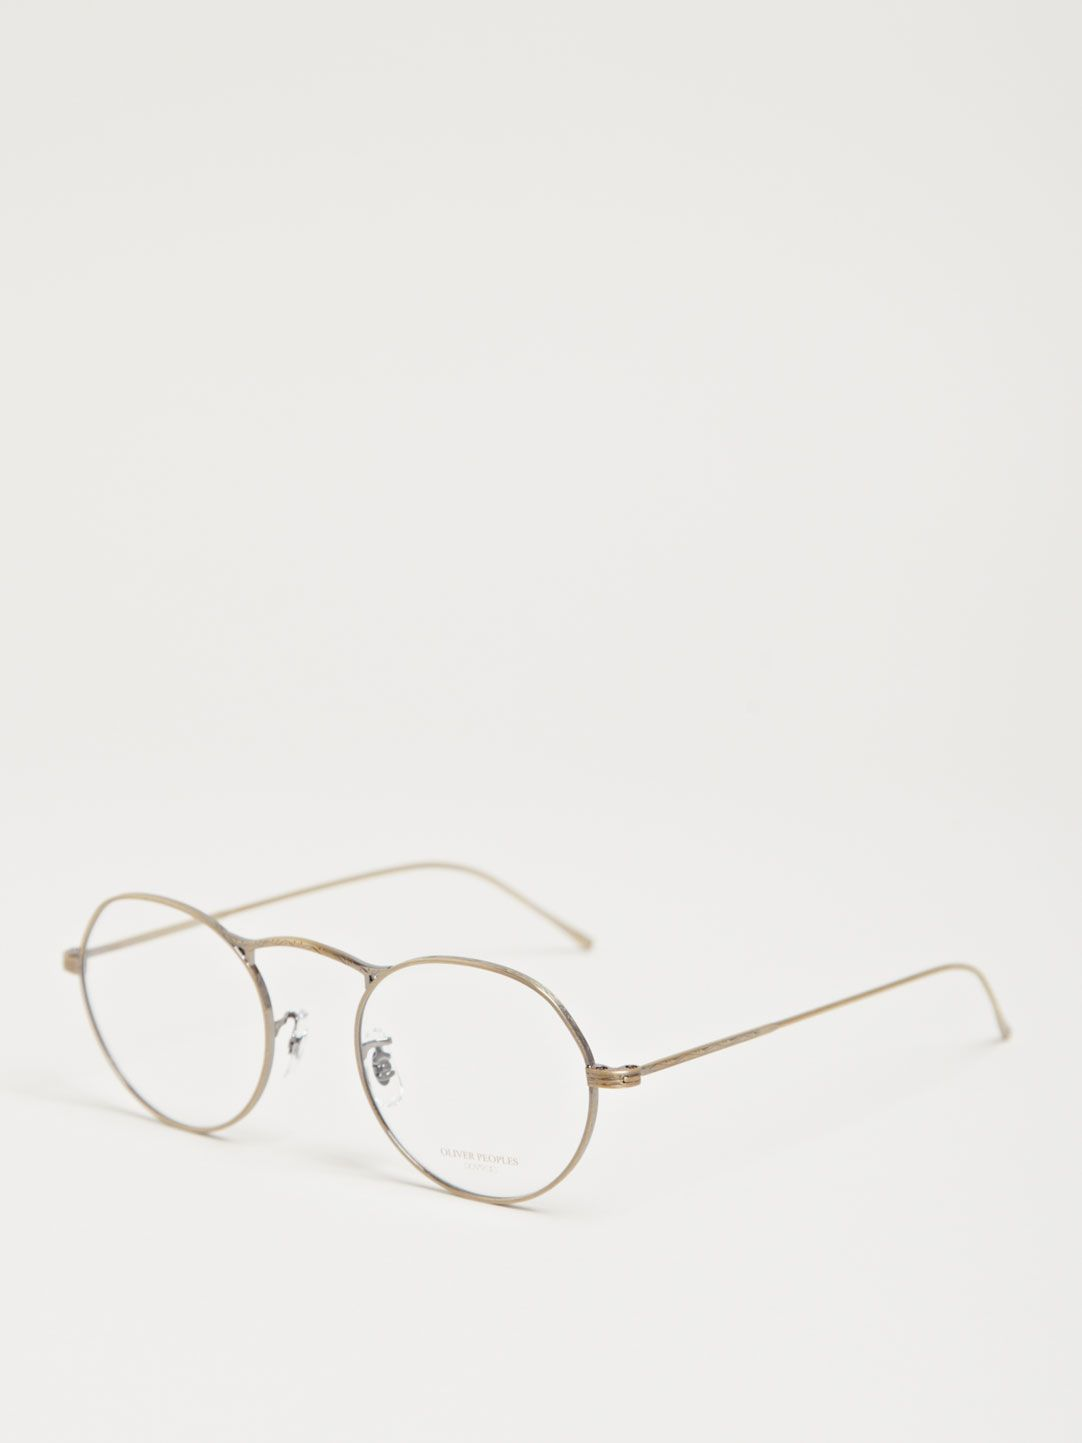 1d70424cce Oliver Peoples Original Vintage M-4 Glasses